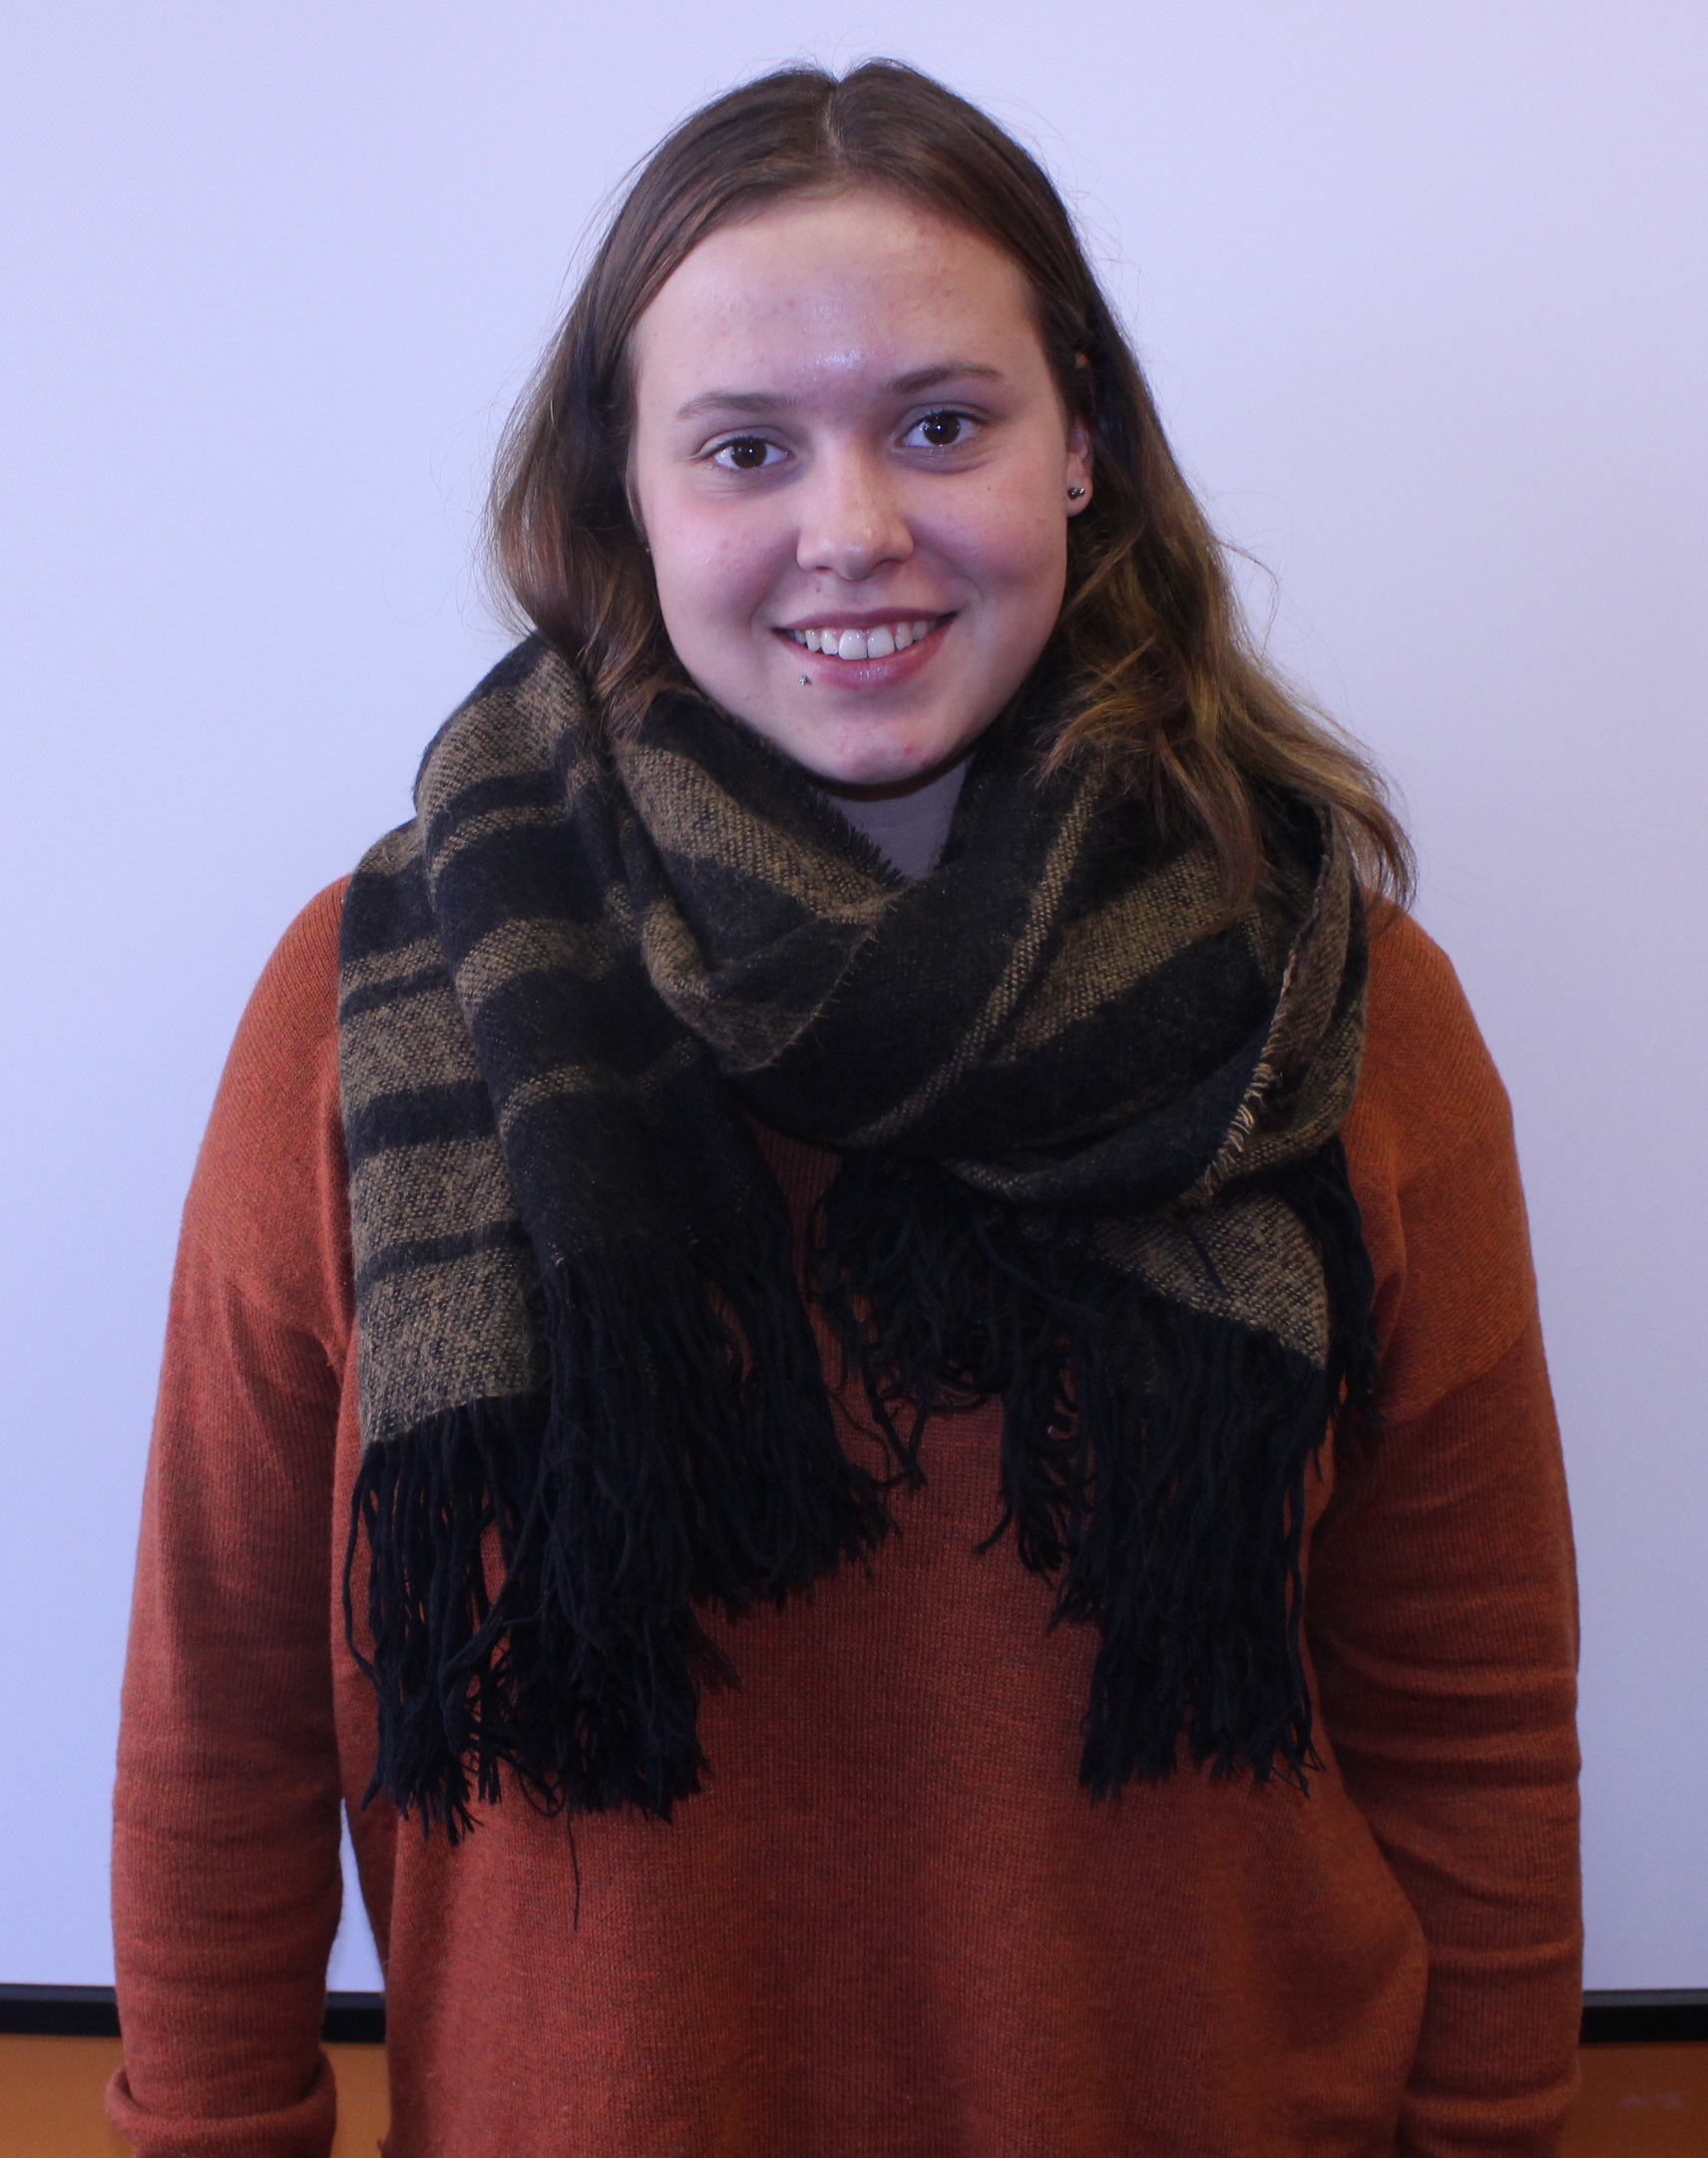 Fabienne Fuhrer from Switzerland  learning French in Canada with EC Montreal